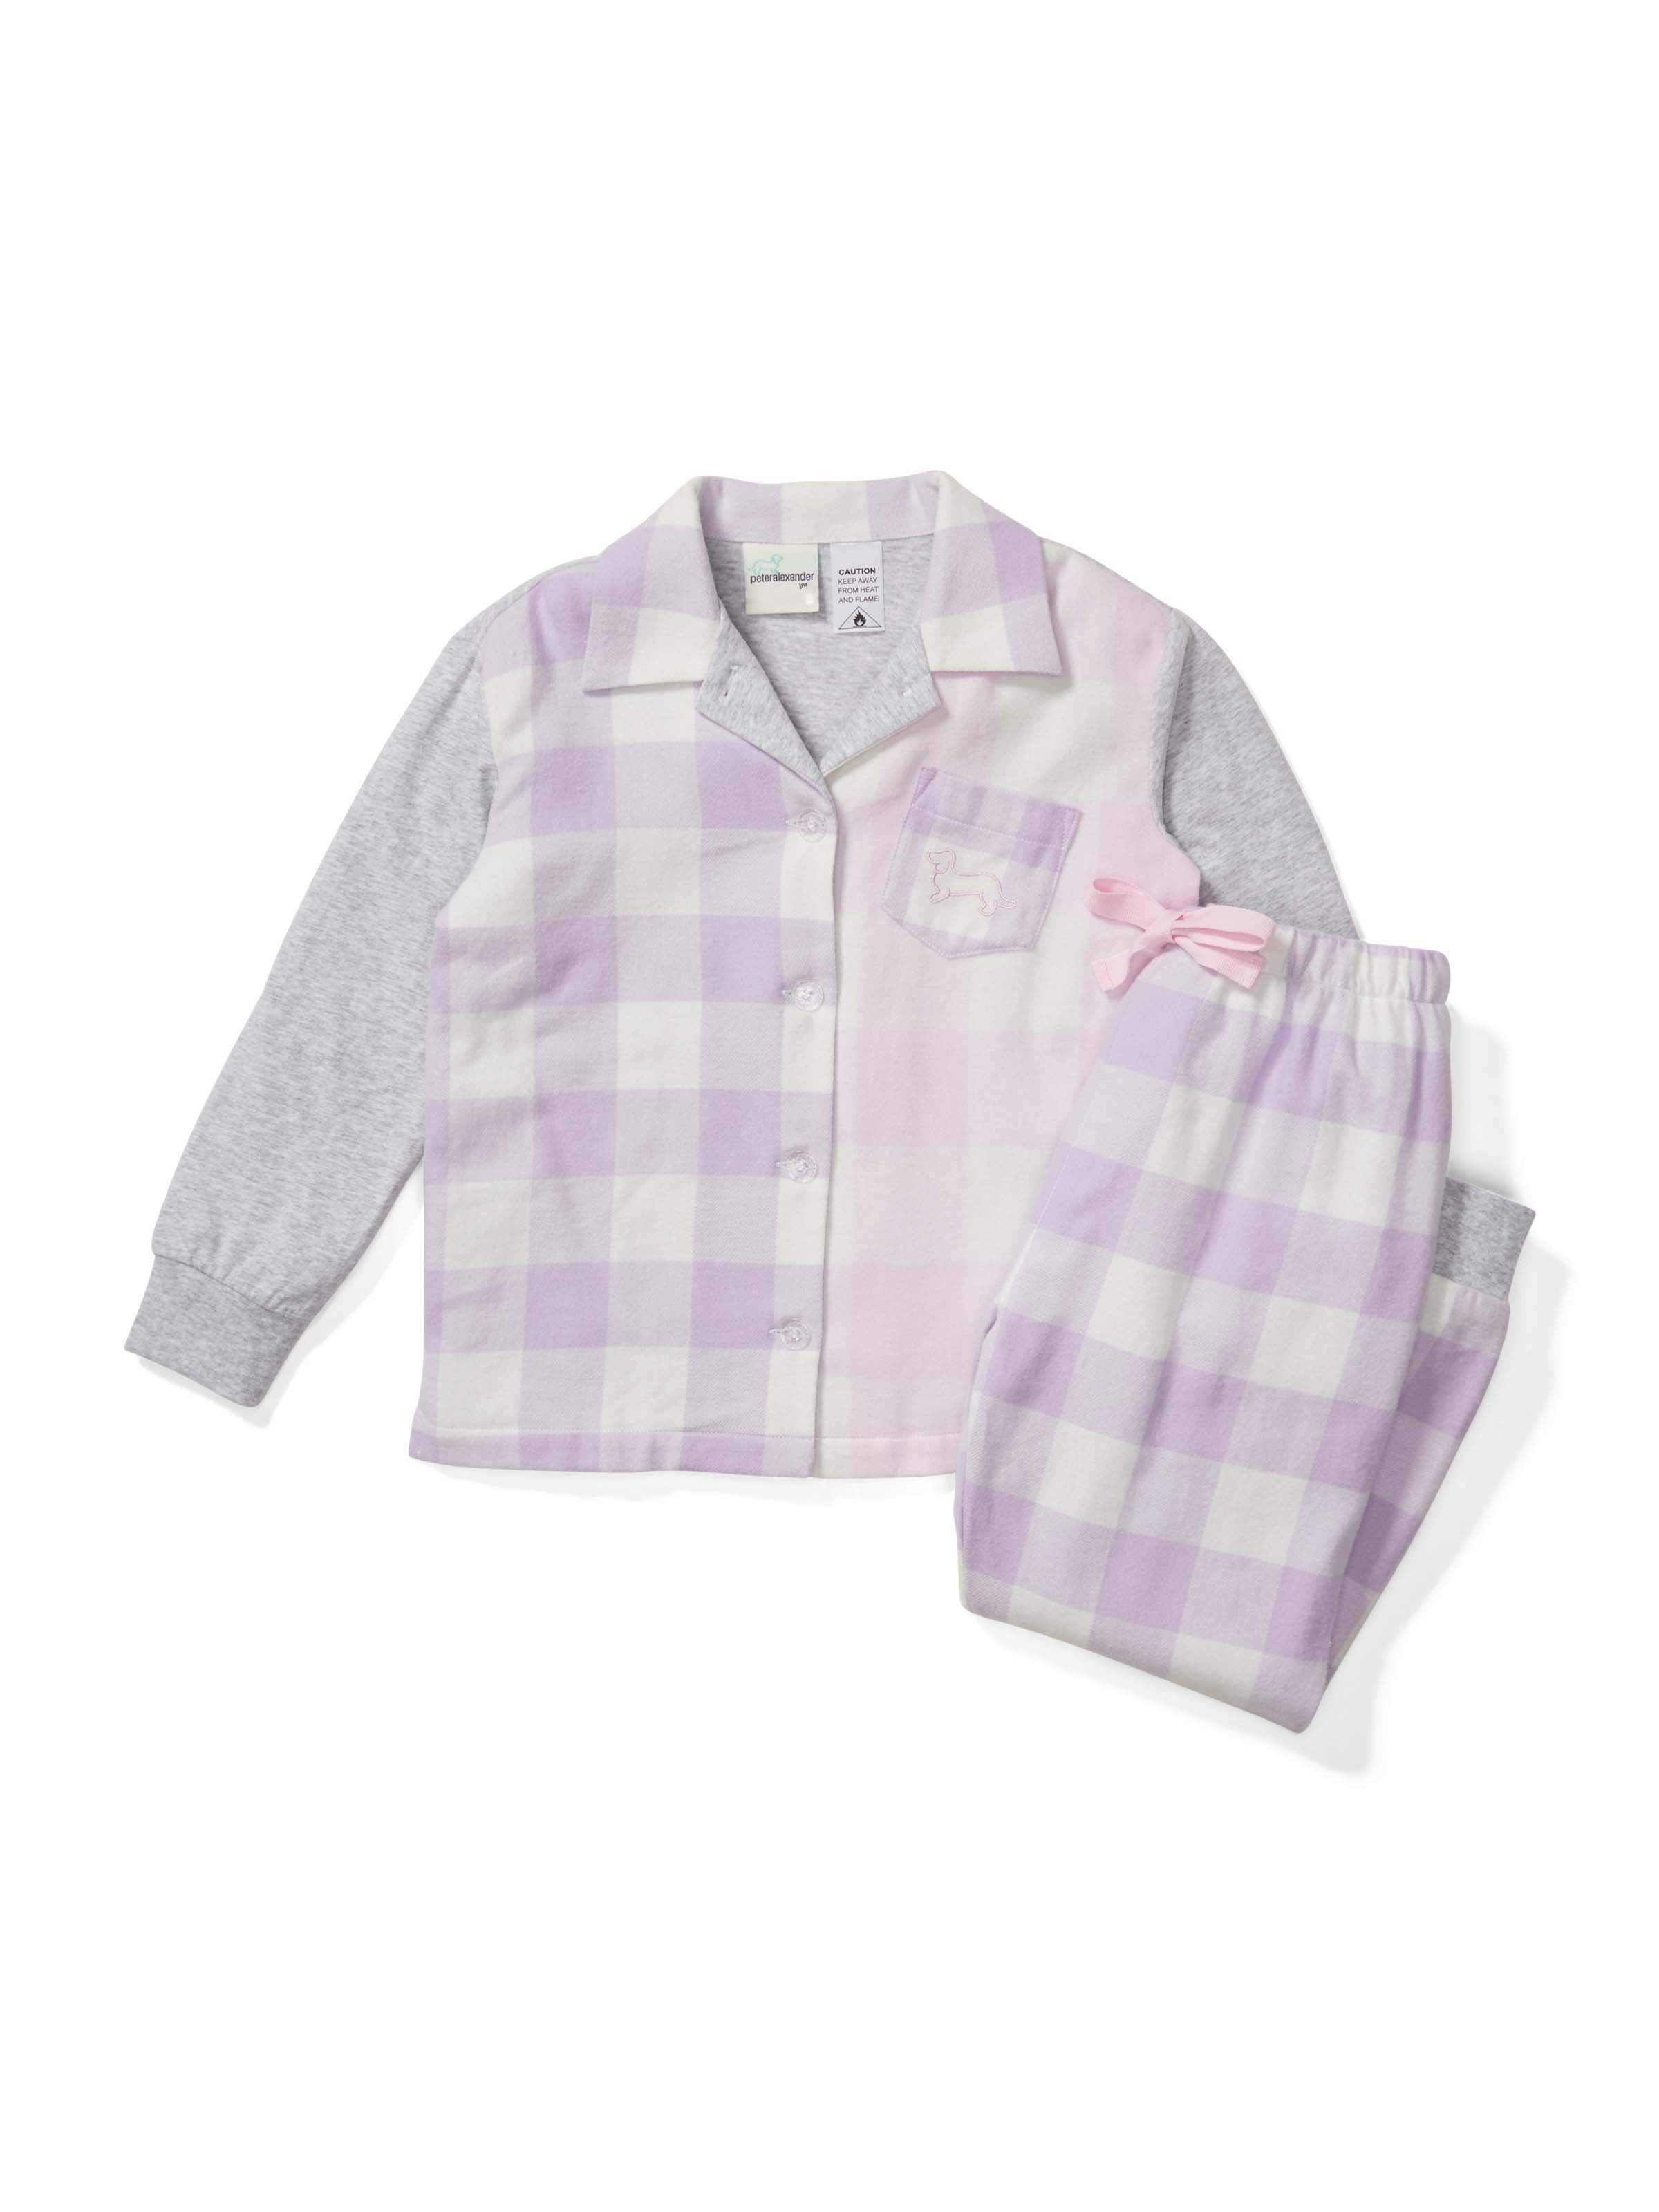 Jnr Girl Gingham Flannelette Long Pj Set